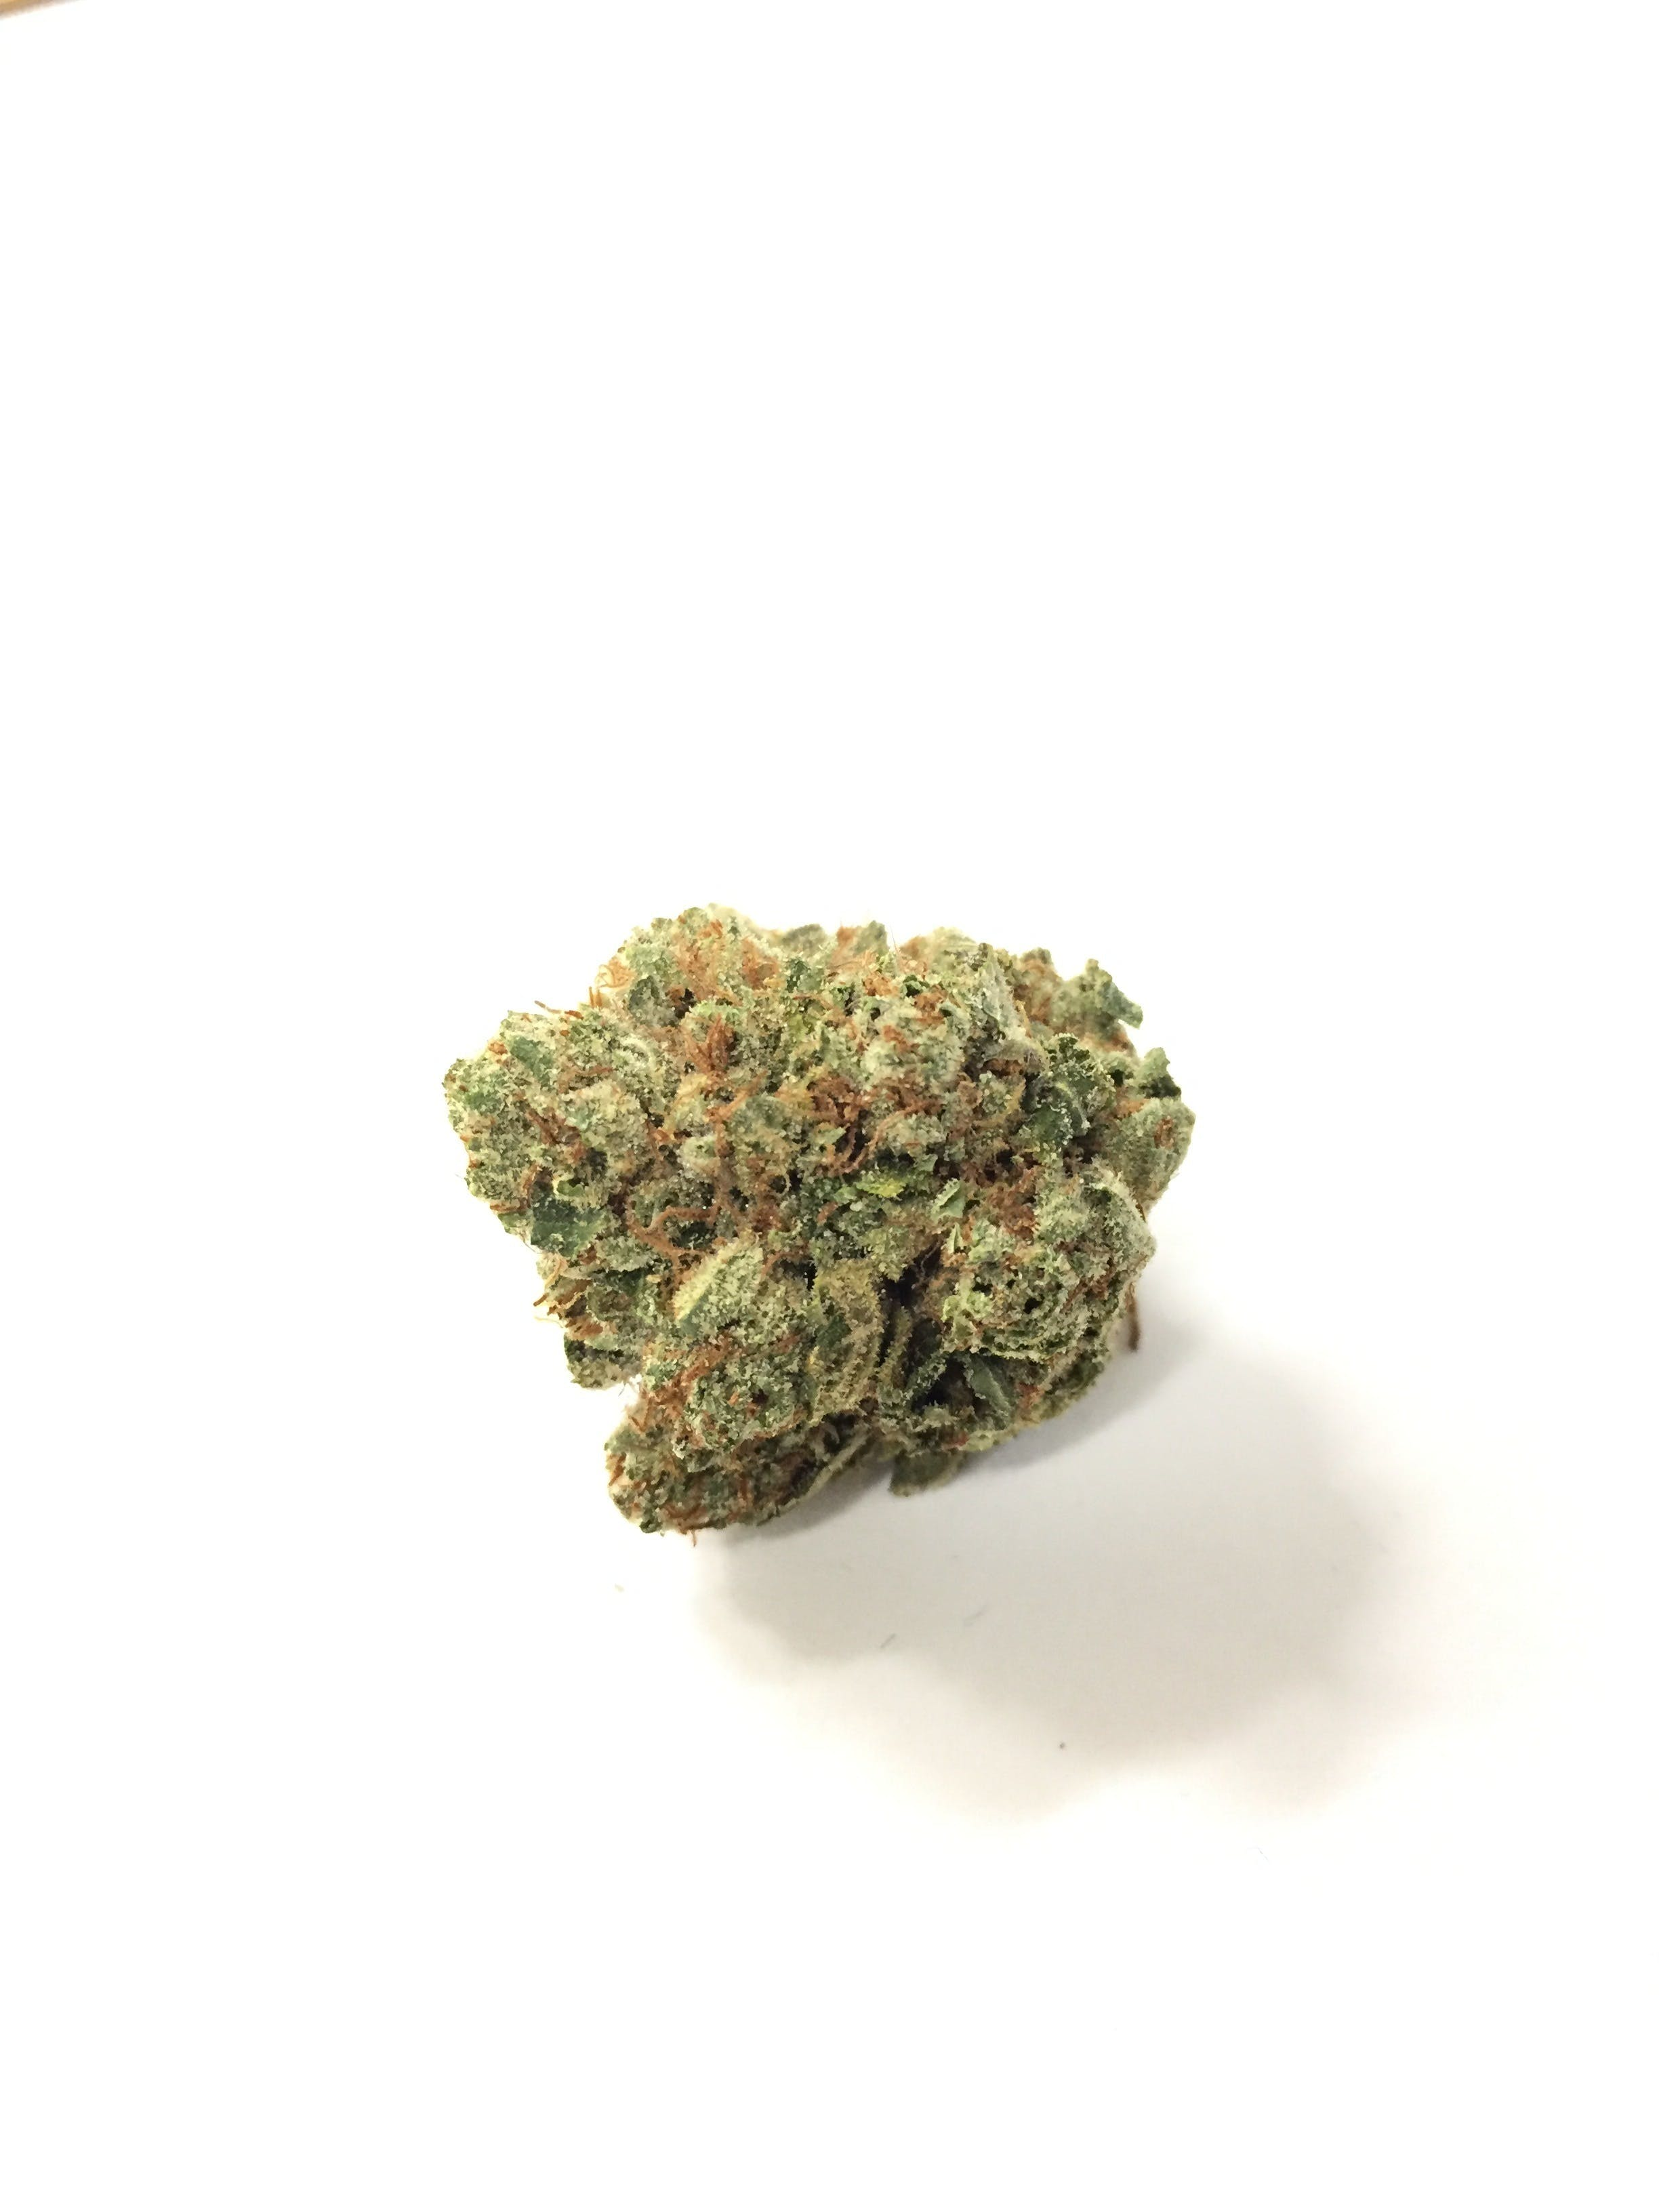 marijuana-dispensaries-6102-vineland-ave-north-hollywood-abusive-og-special